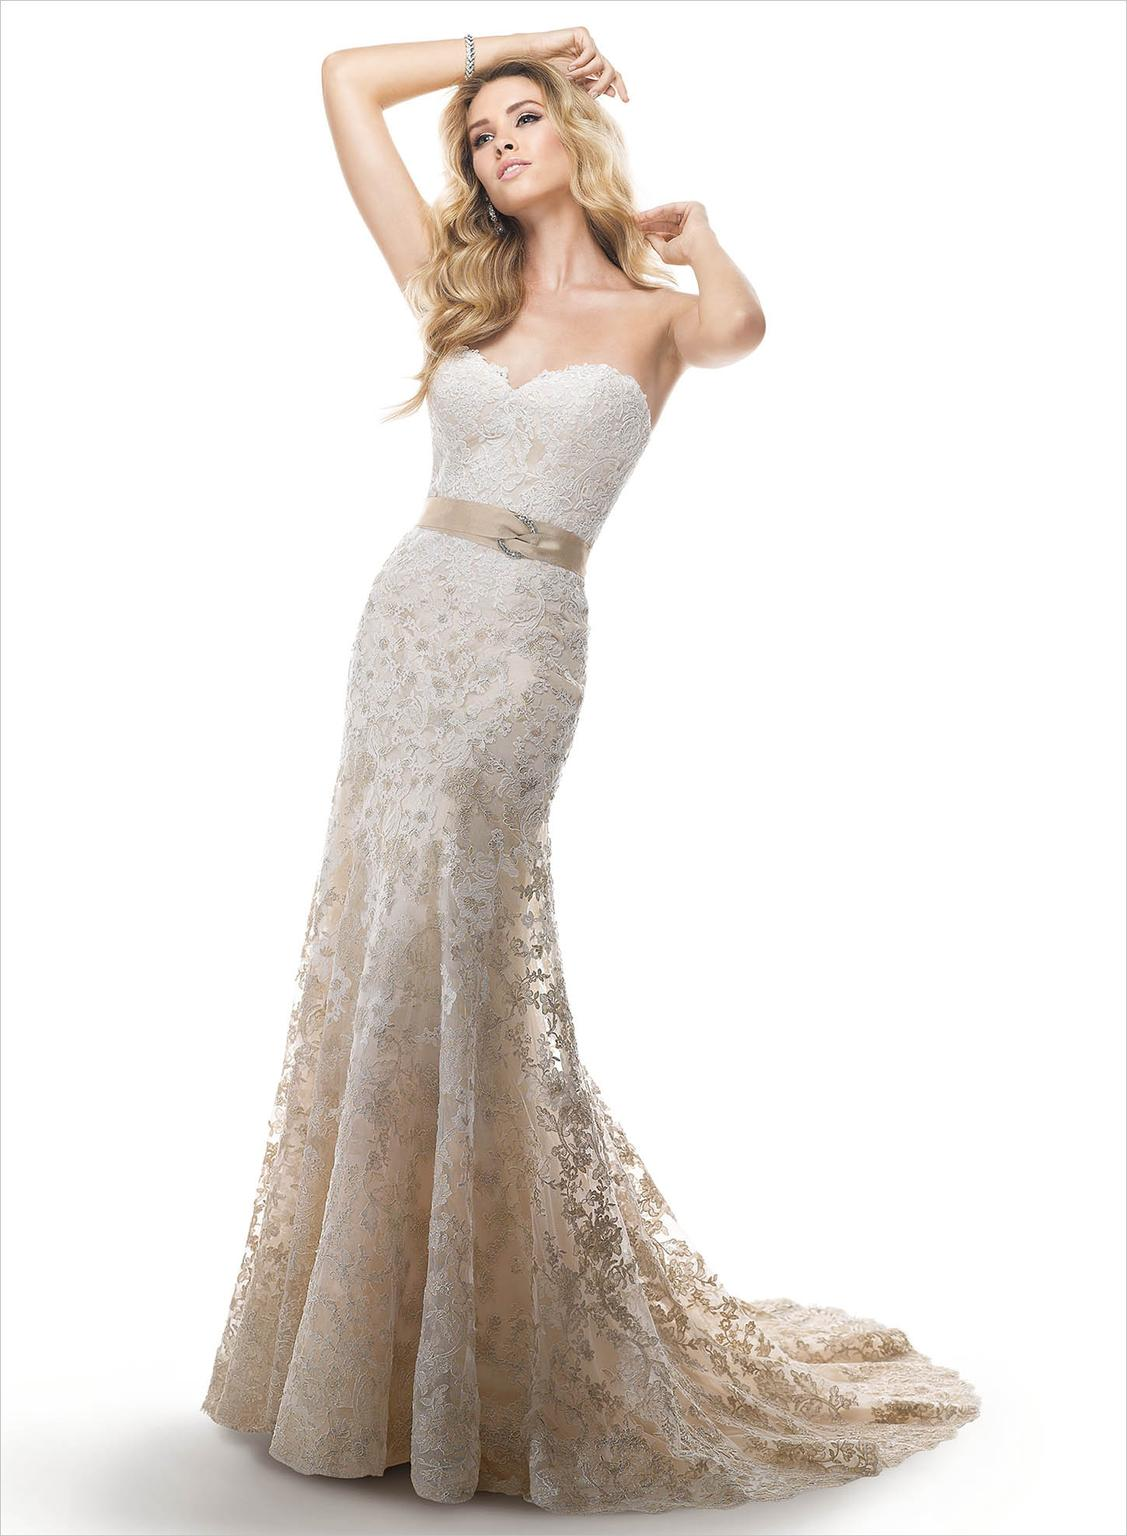 maggie sottero britannia 1000 size 12 used wedding With maggie sottero used wedding dresses